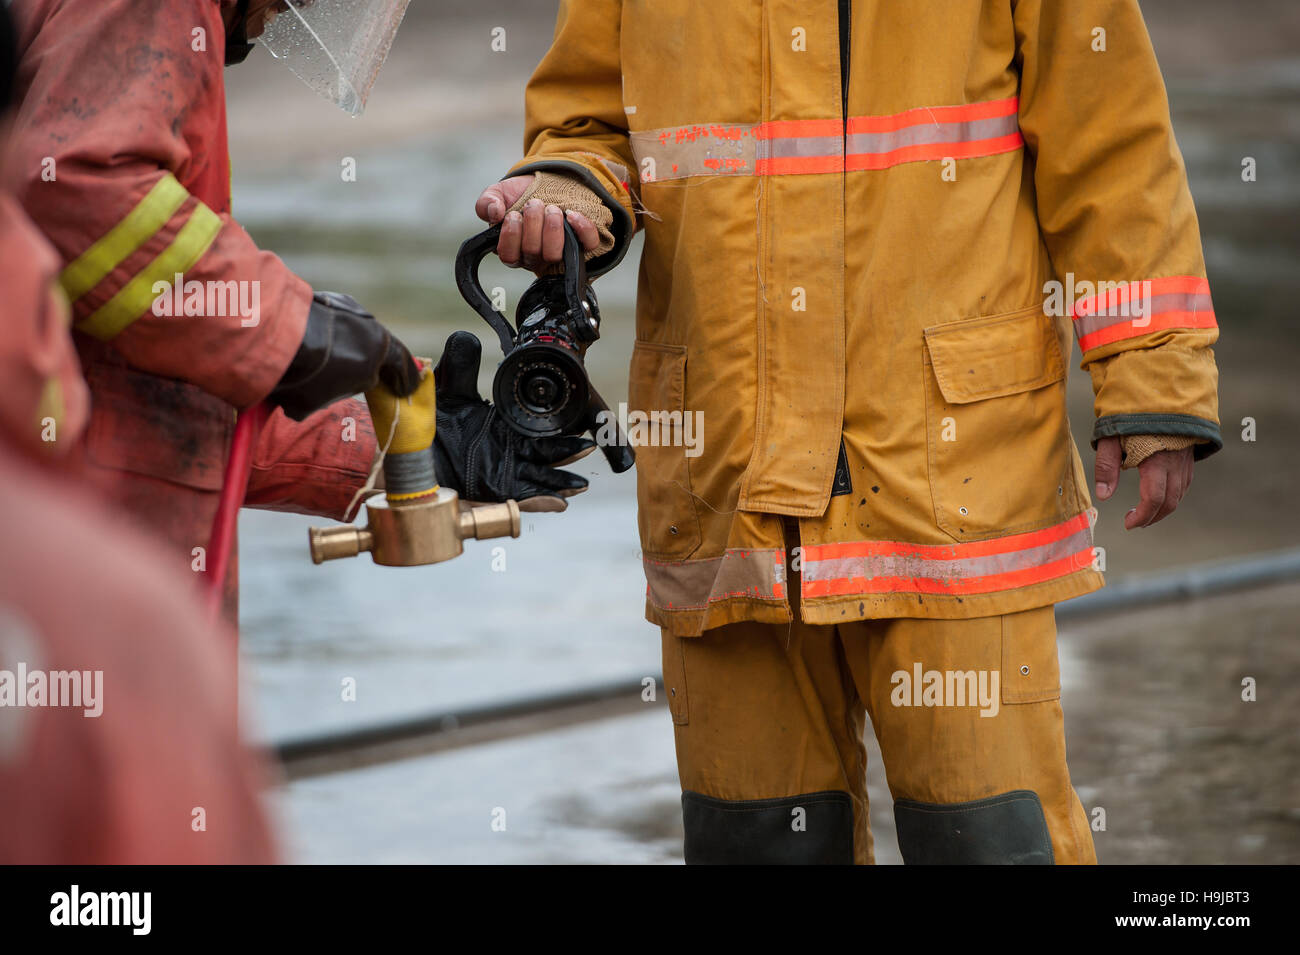 Firefighters carry host connection - Stock Image